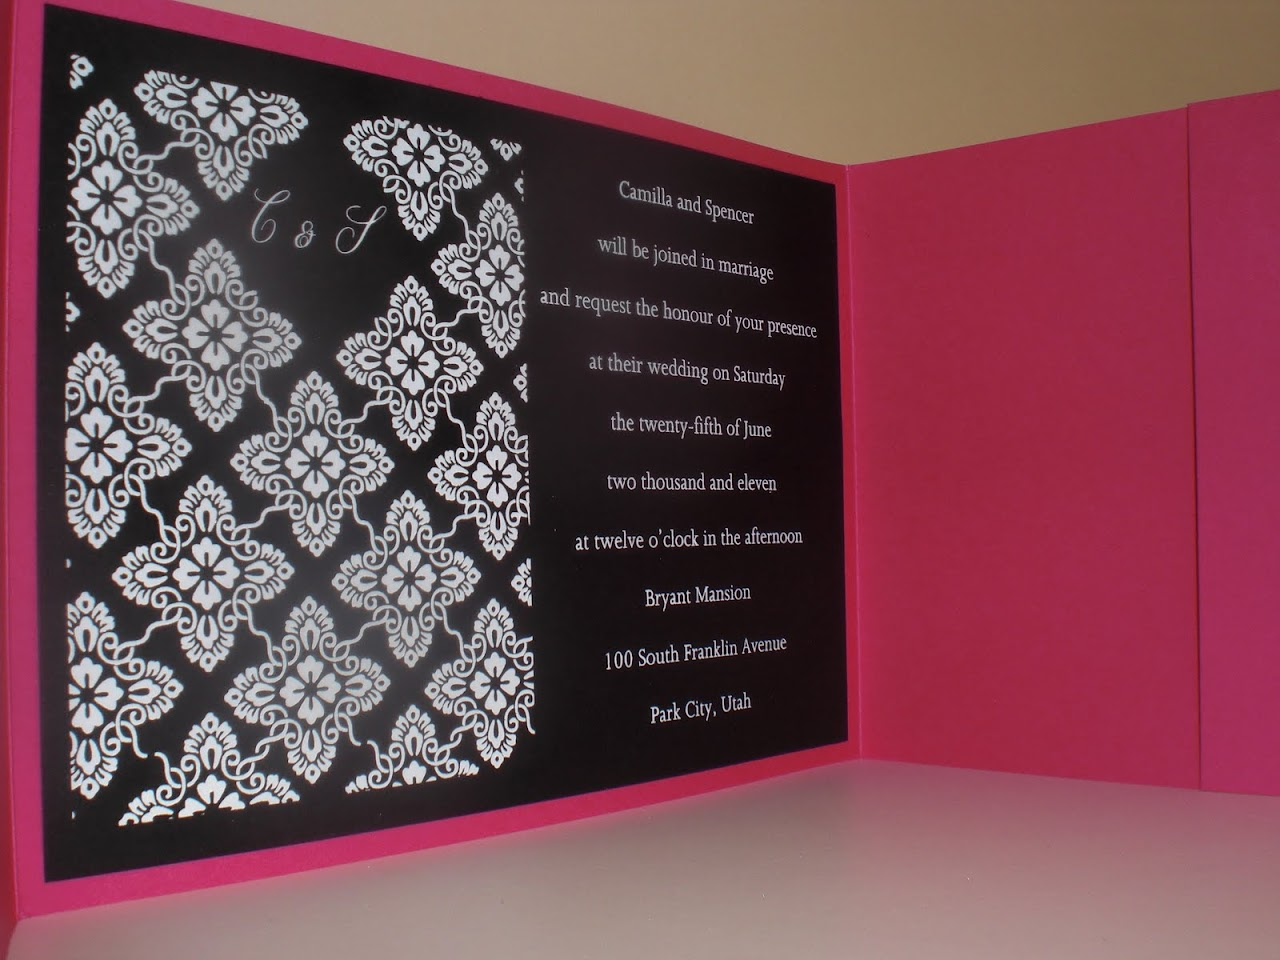 PaperHearts Invitation Studio: Is it possible to print on dark paper?